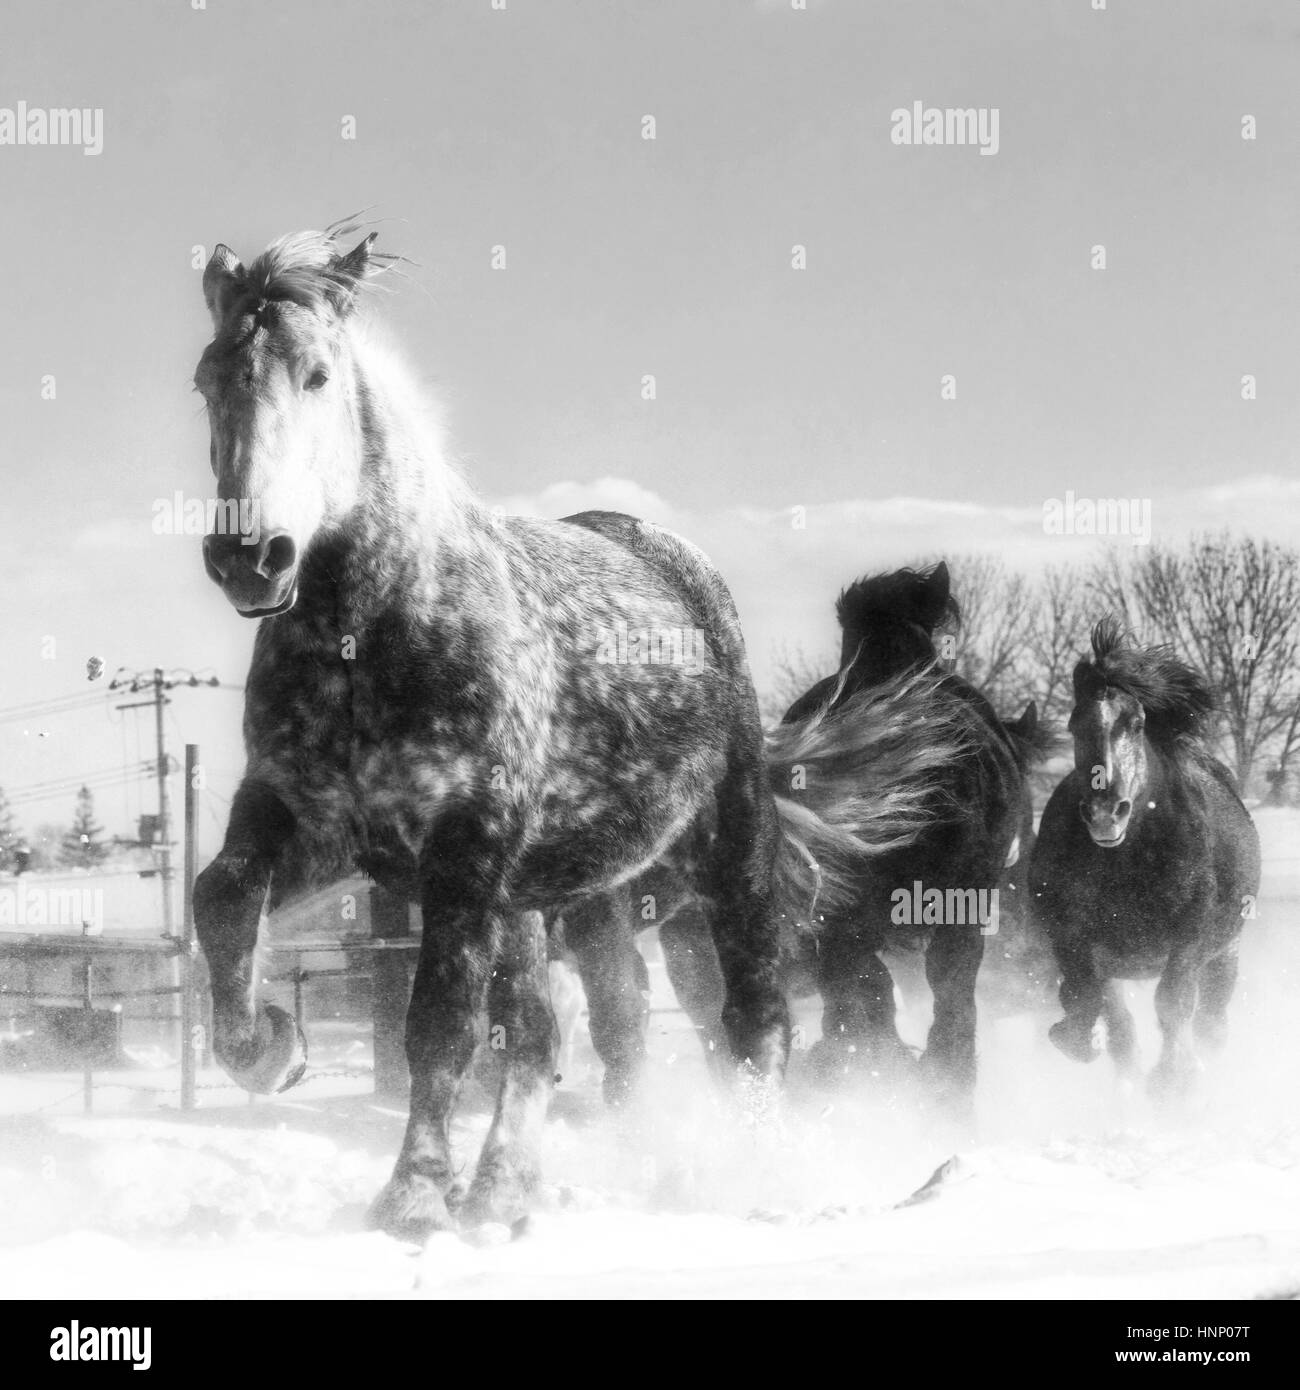 Horses Running Snow Black And White Stock Photos Images Alamy